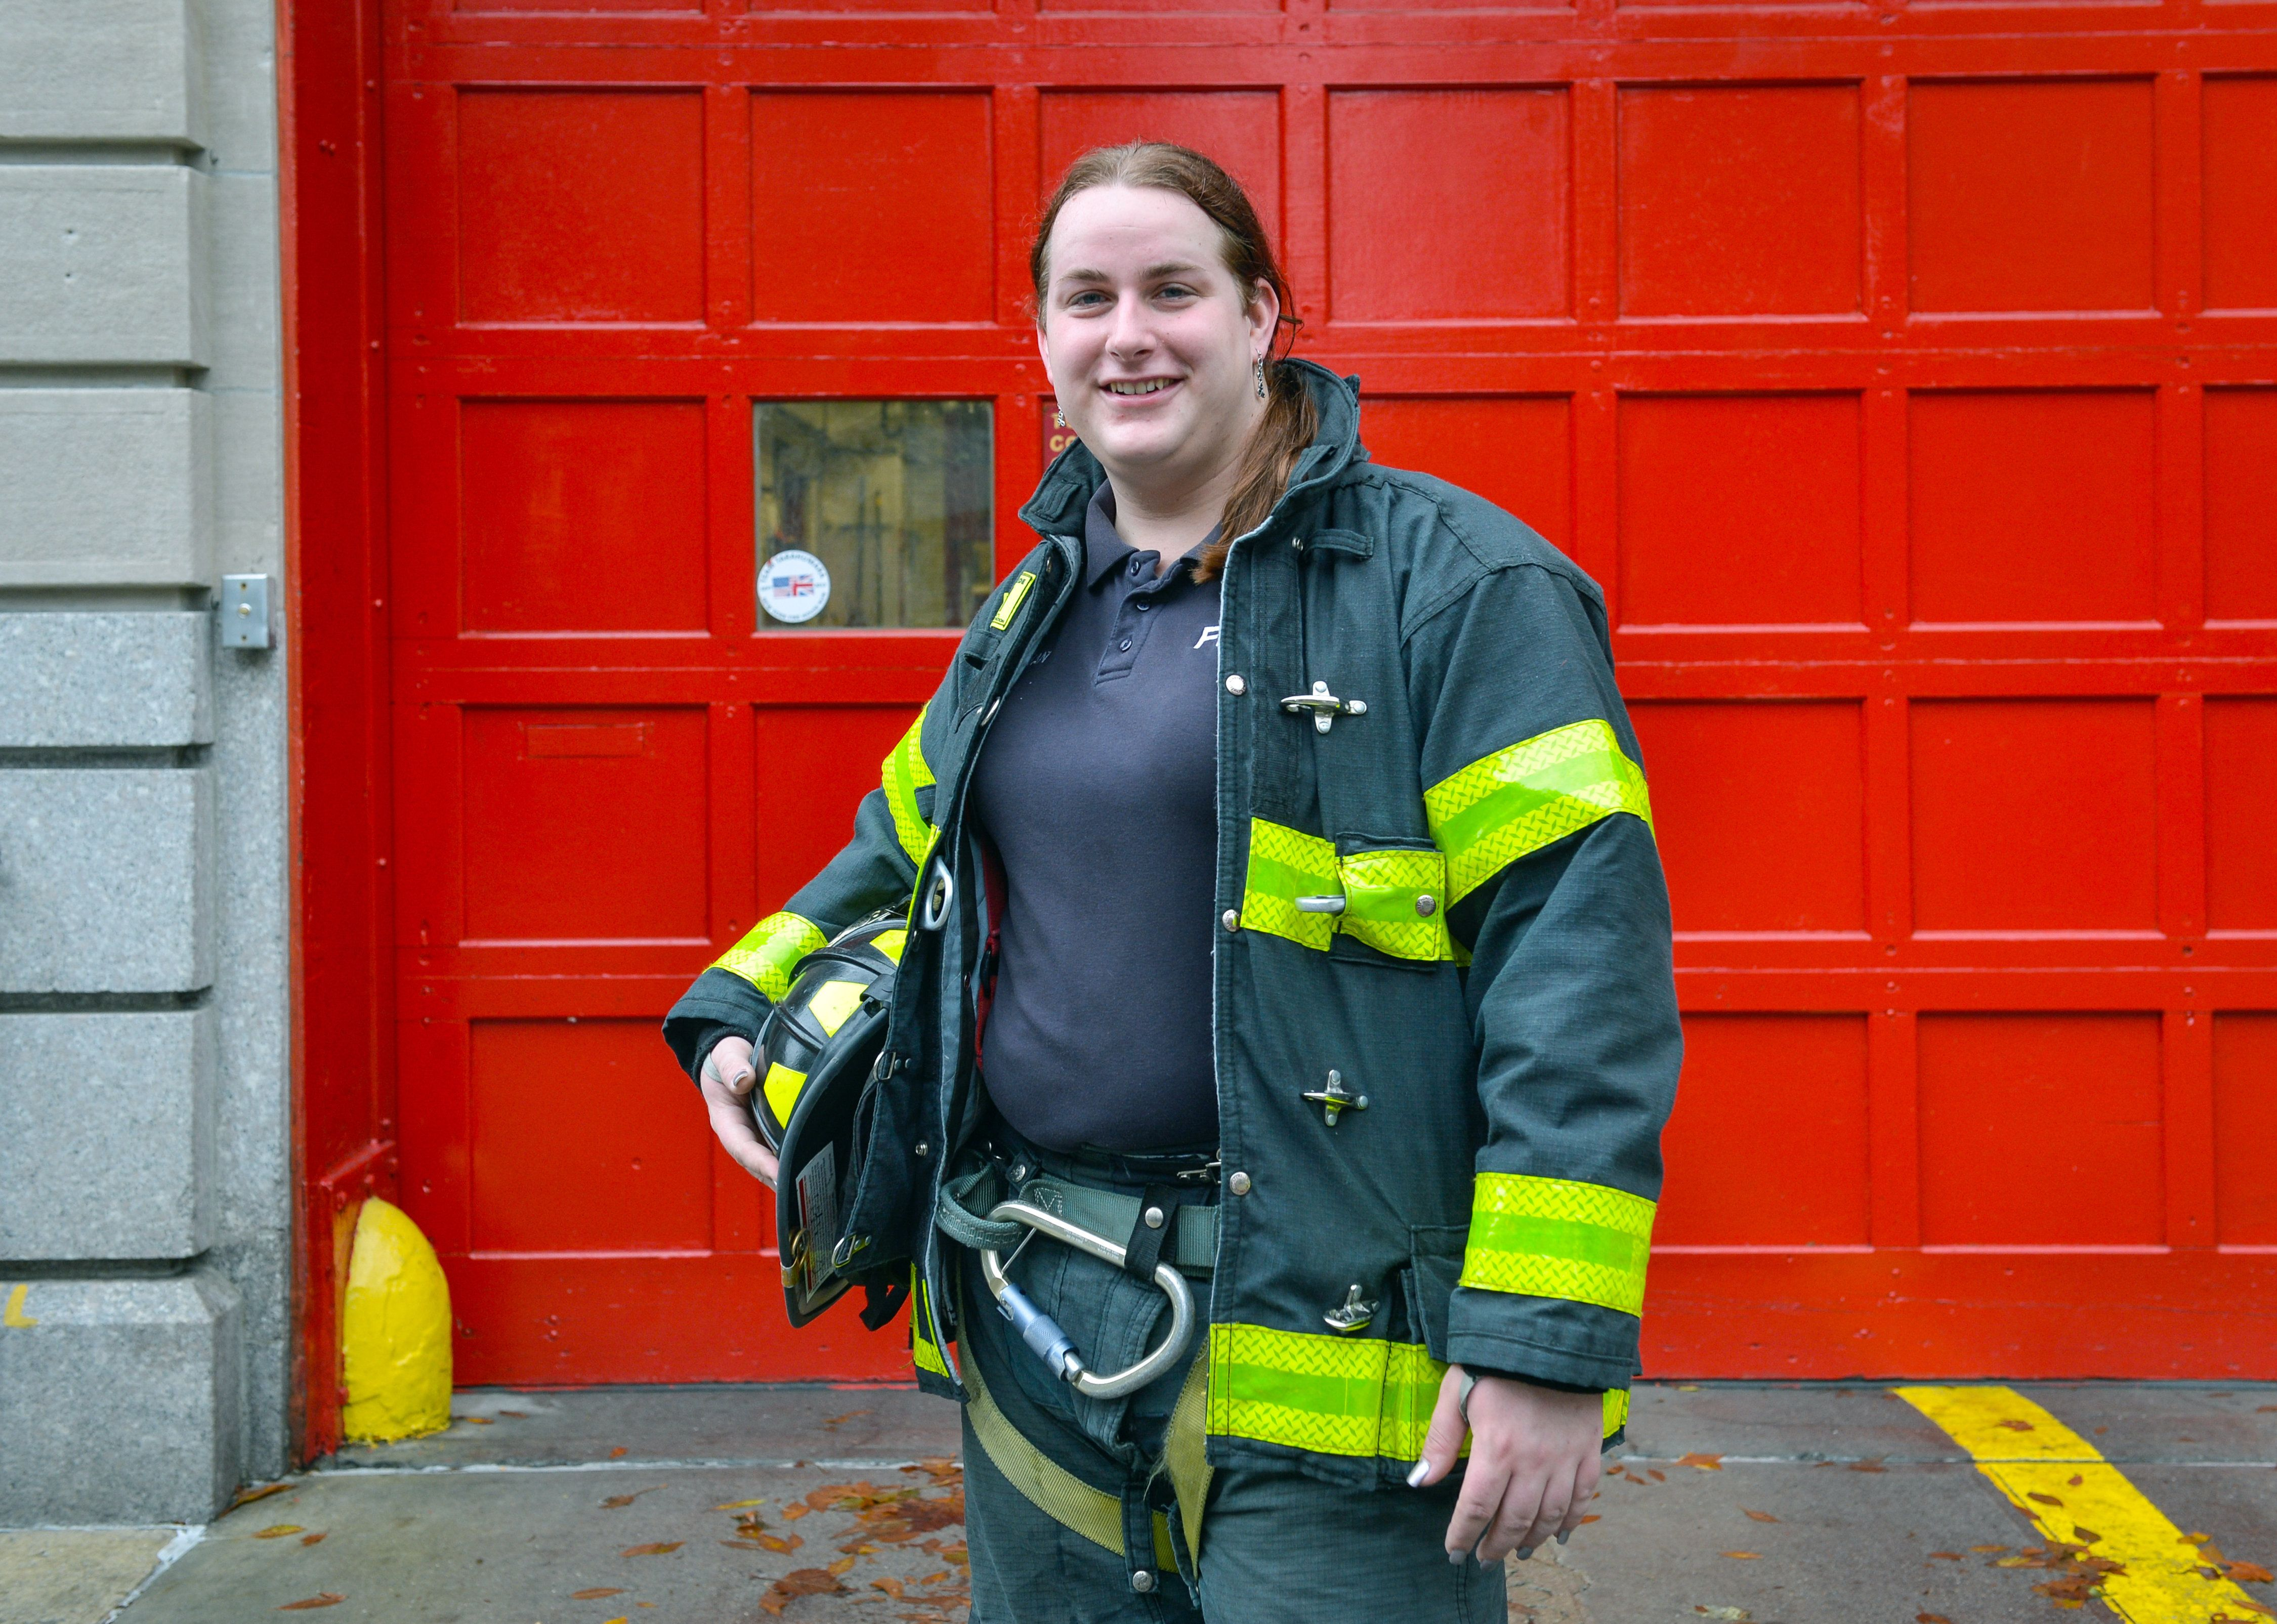 Brooke Guinan, the city's only transgender firefighter, is raising awareness for gay and transgender rights as poster child of social media campaign. Guinan. poses for photos in front of Engine 312, located at 22-63 35th Street in Astoria, Queens. (Photo By: Anthony DelMundo/NY Daily News via Getty Images)